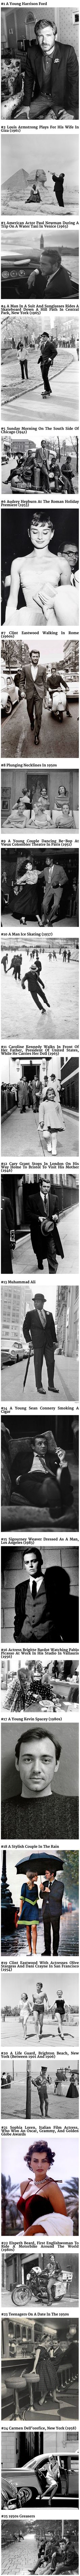 20+ Historic Photos That Show People Had More Class In The Past.